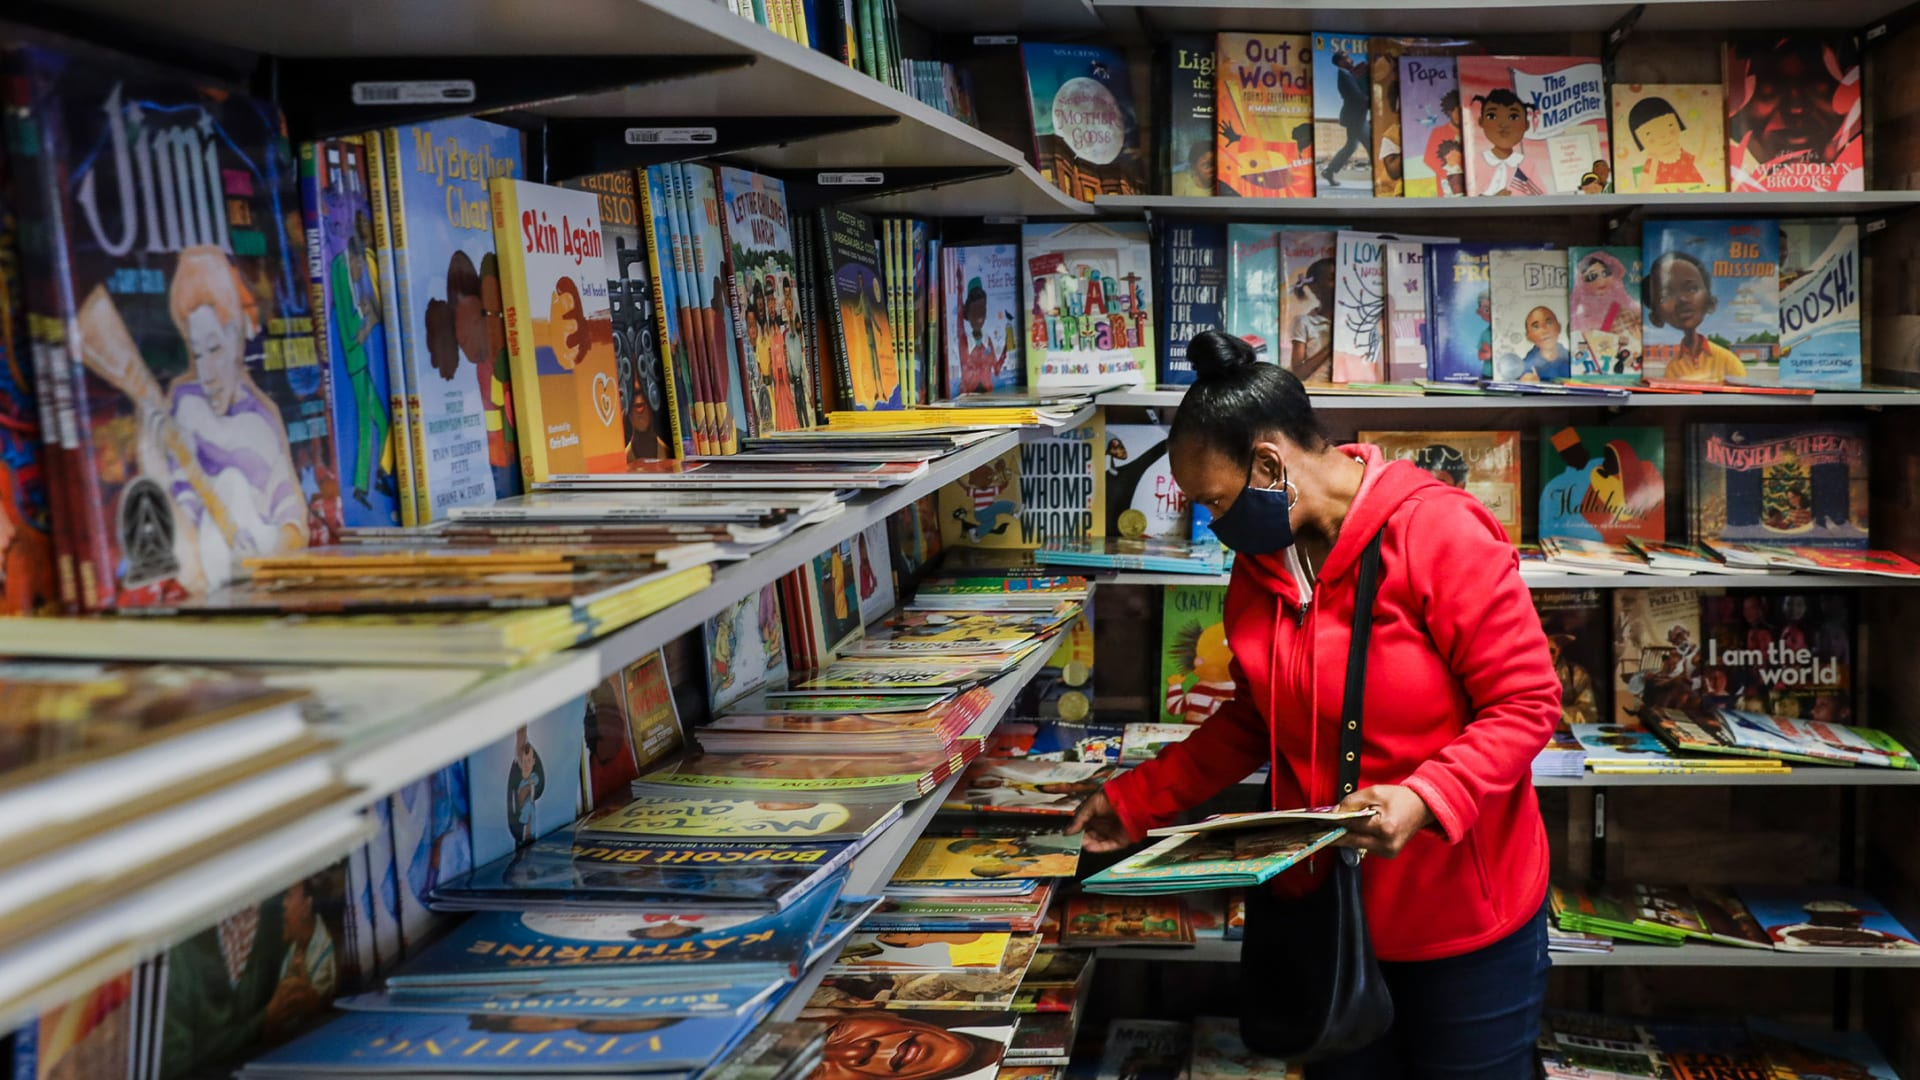 A patron browses in the children's book section at Frugal Bookstore, the only Black-owned bookshop in Boston.